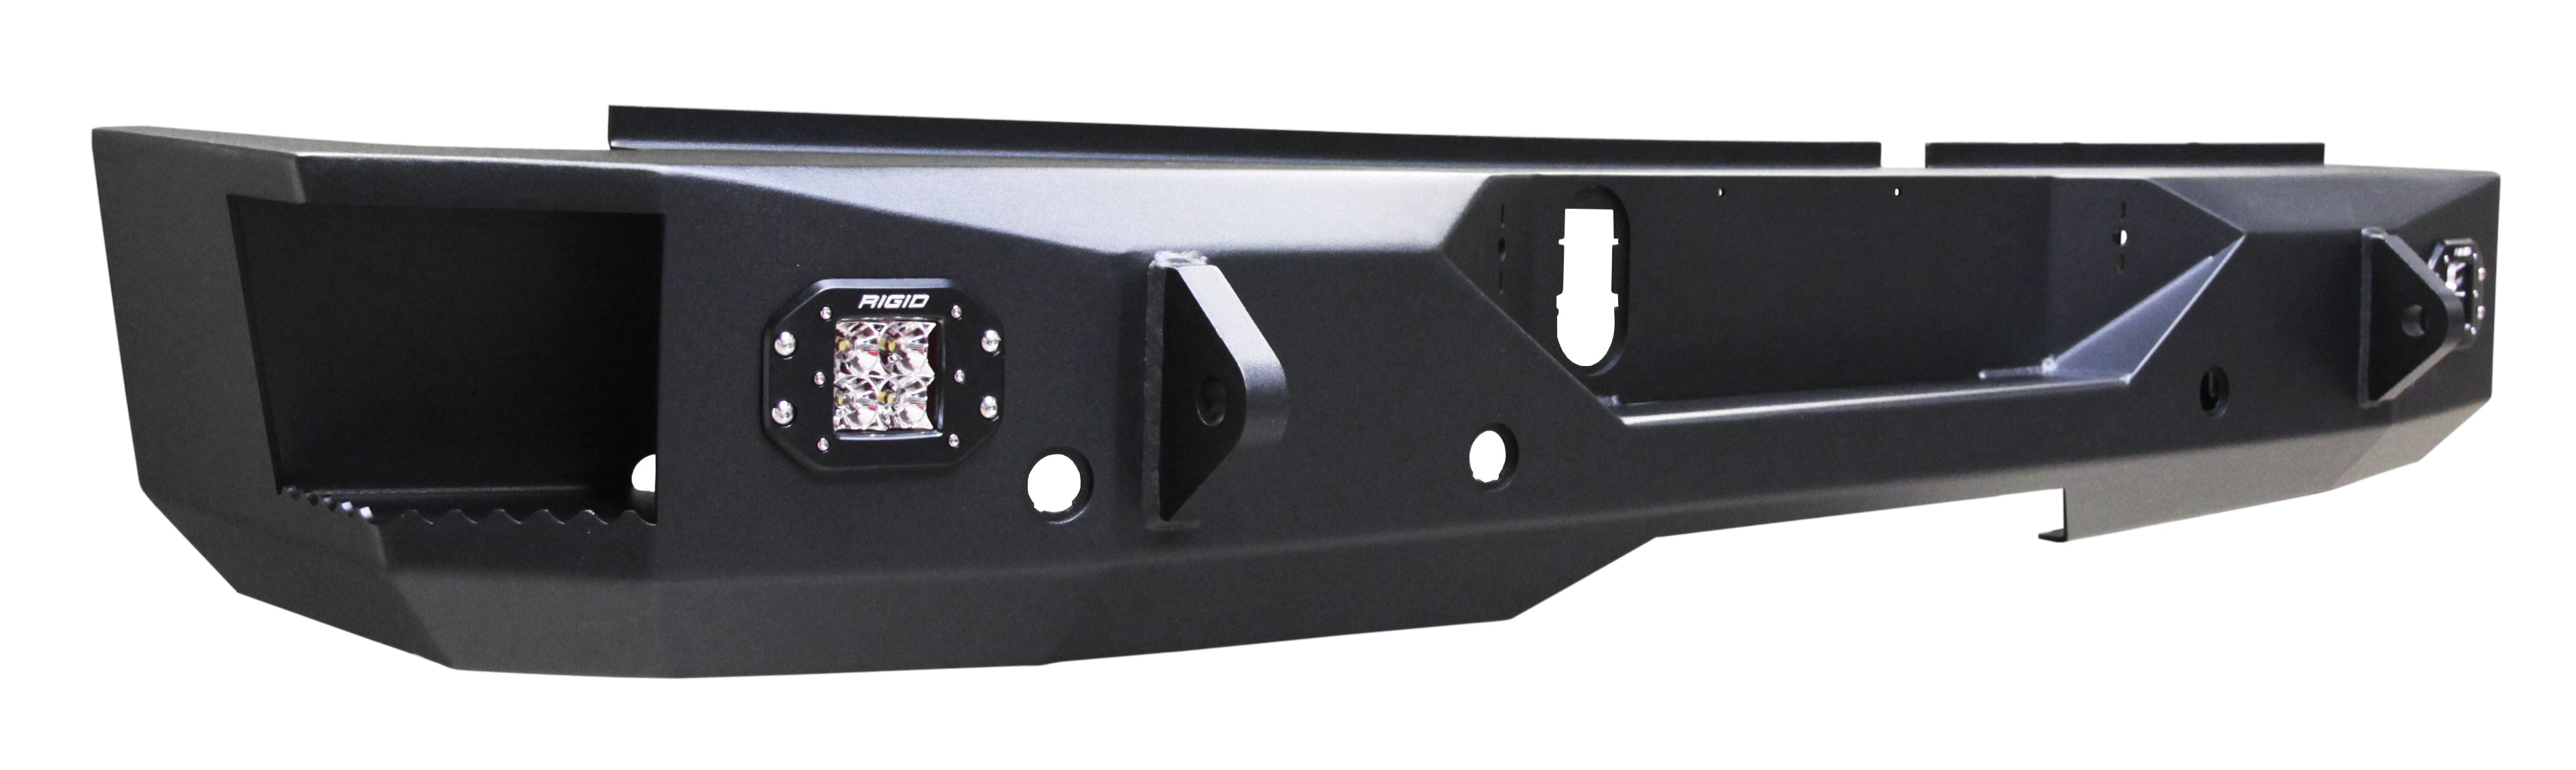 Chevrolet 2500/3500 (2007-2010) Rear Bumper